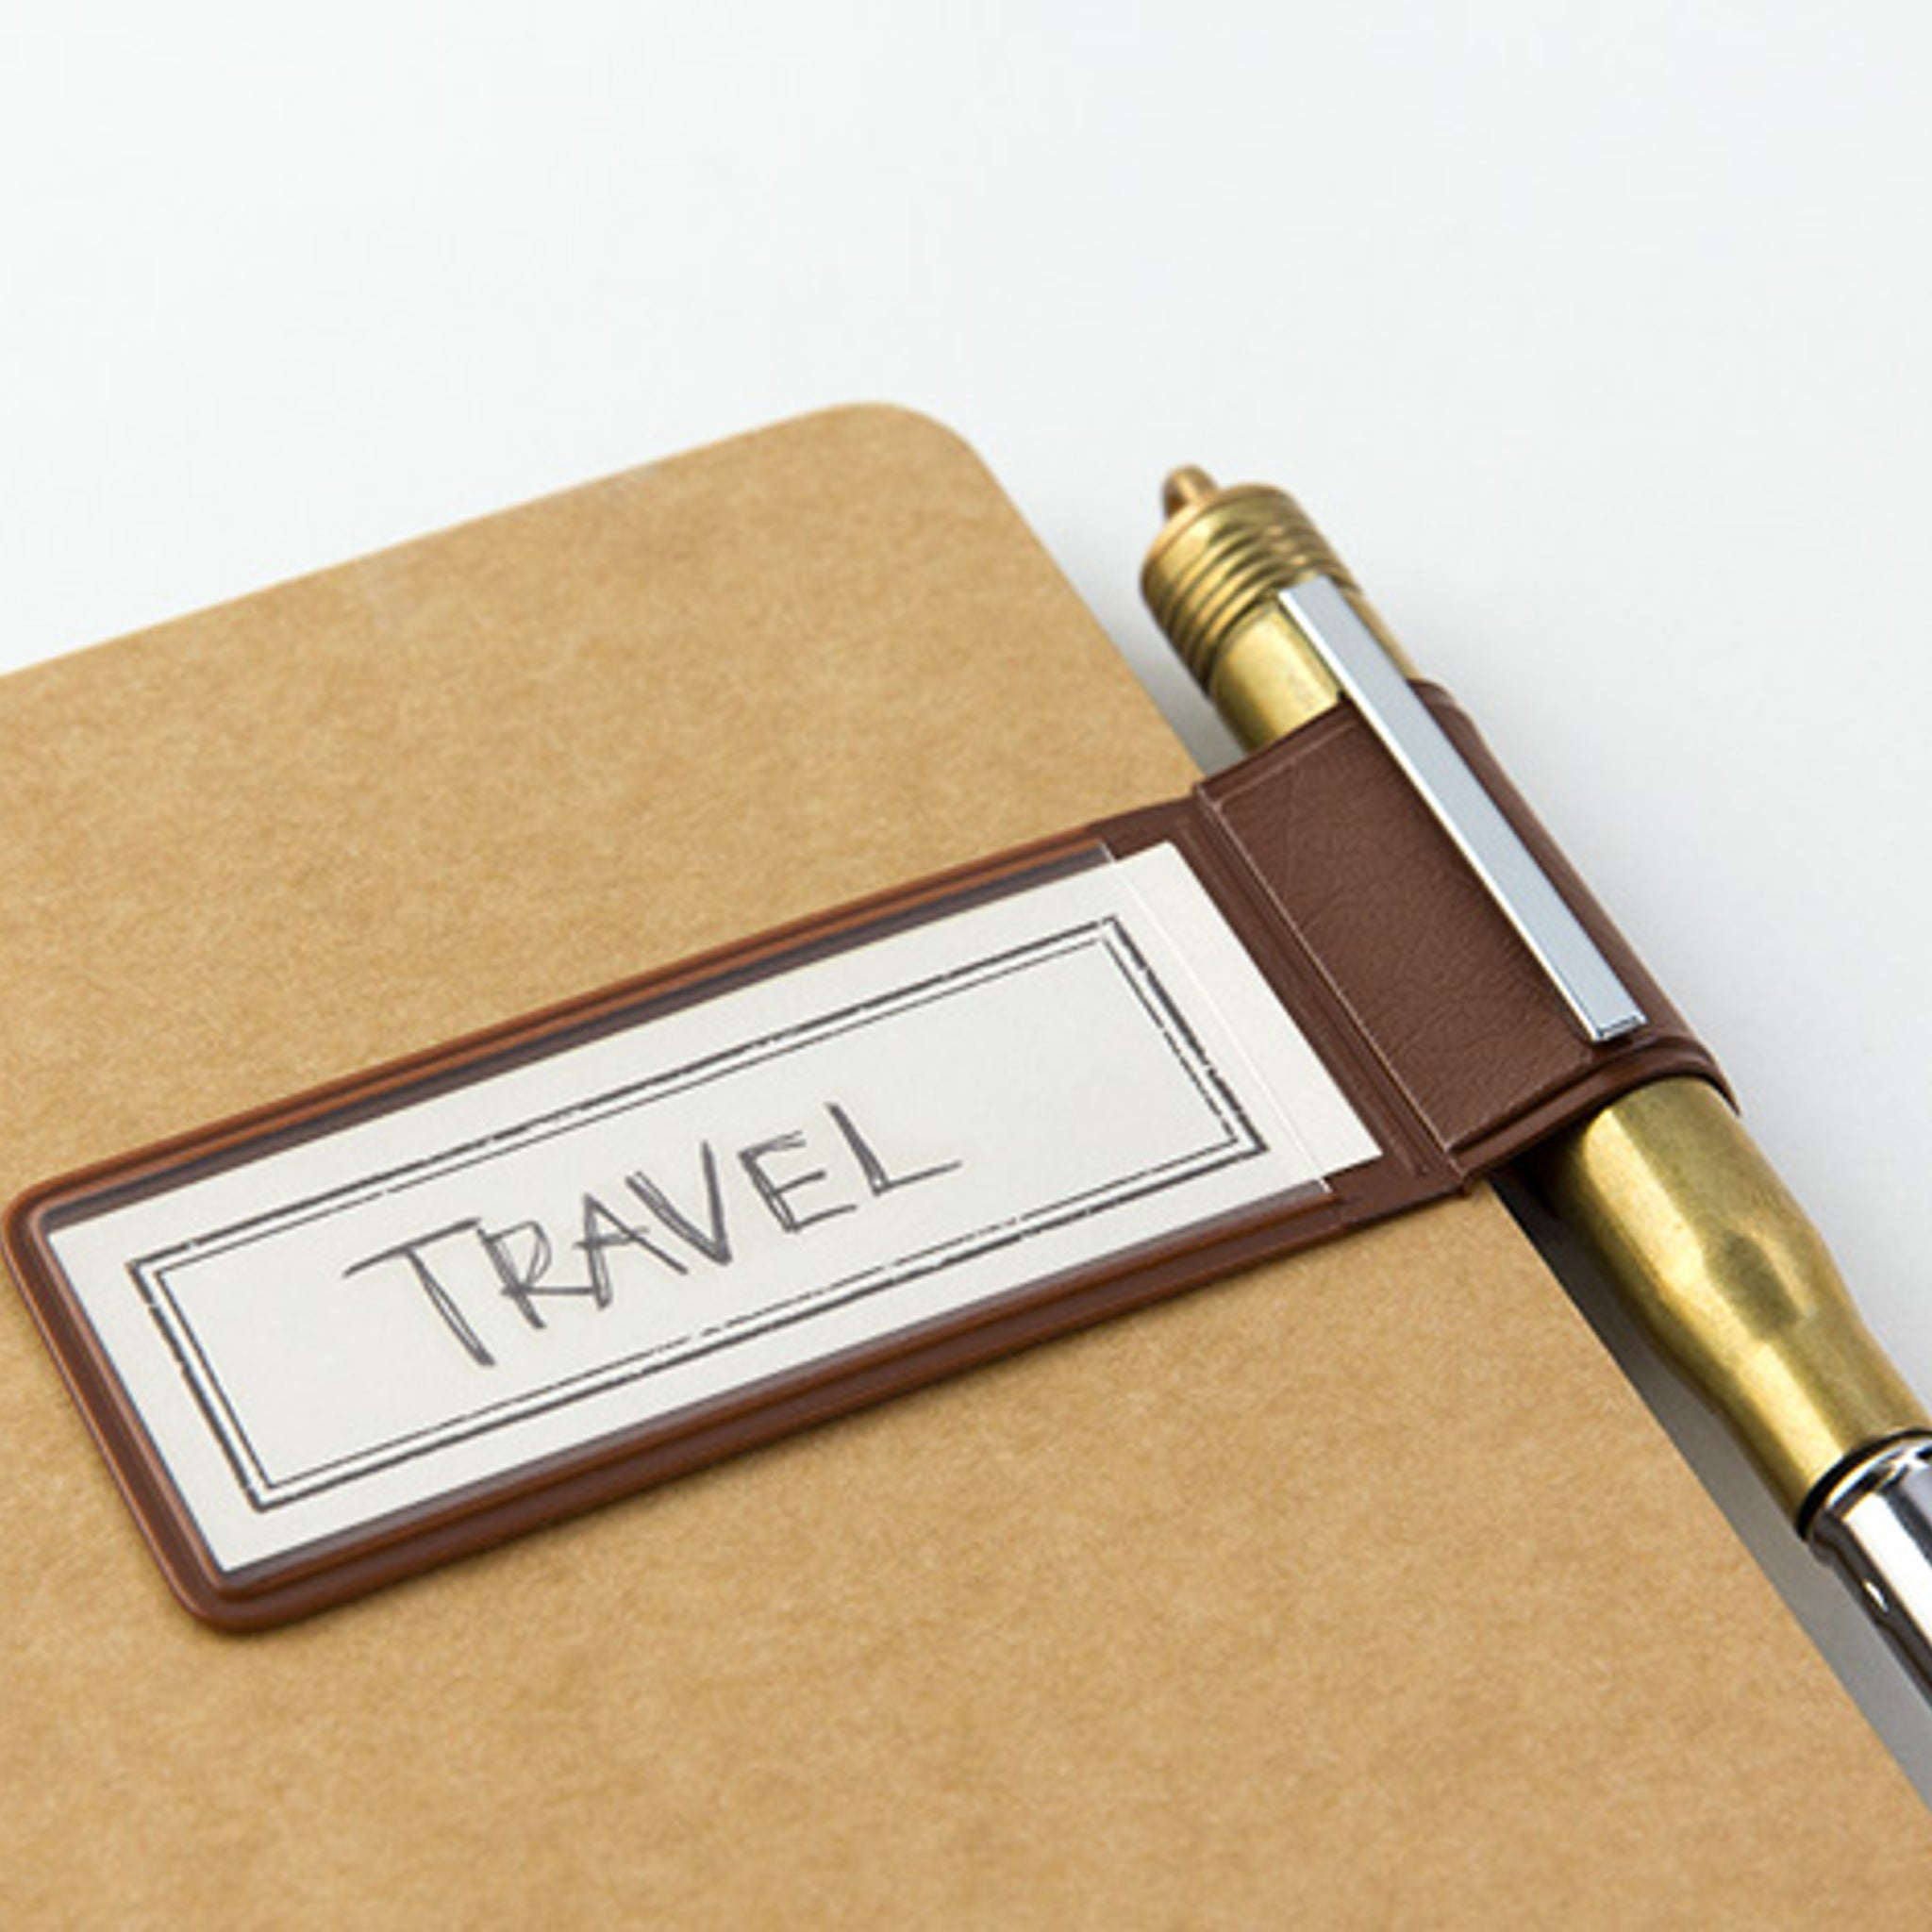 Traveler's Notebook Refill 024 (Regular & Passport Size) - Pen Holder Sticker Brown